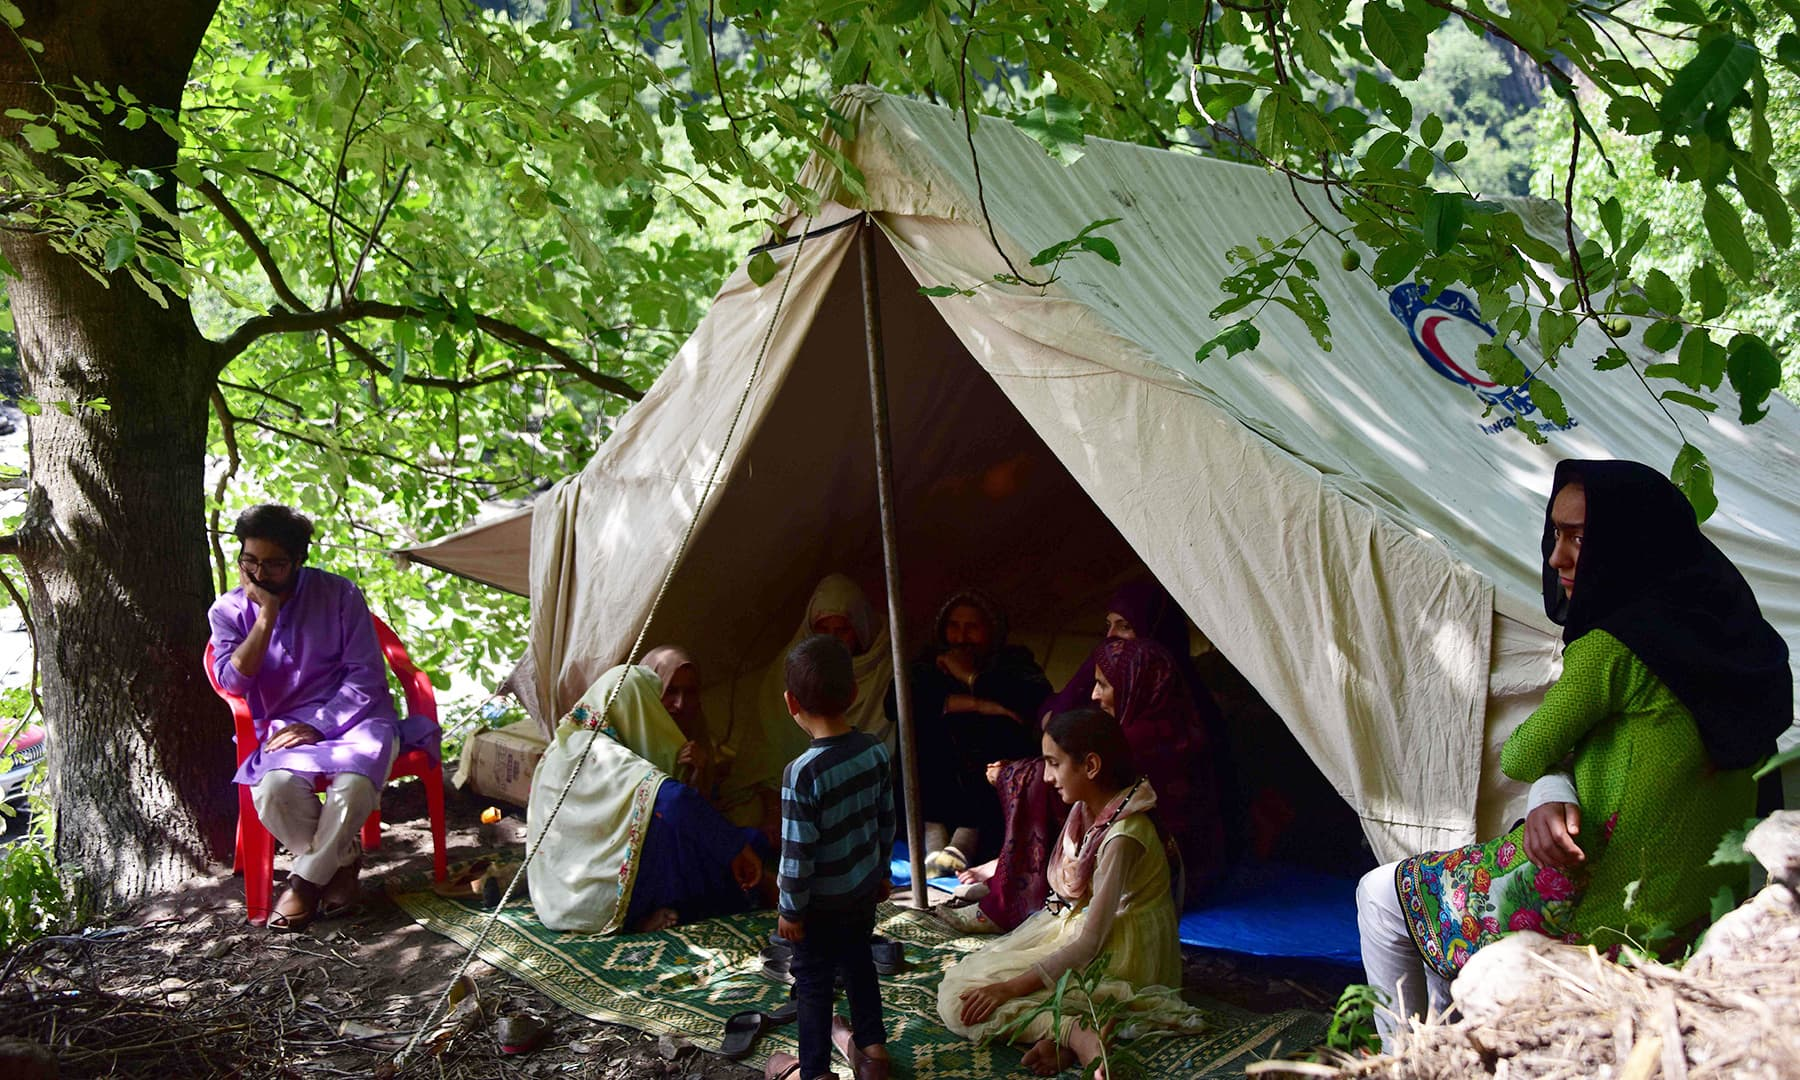 A Kashmiri family take shelter in a tent near their damaged house following heavy monsoon rains in Neelum valley. — AFP